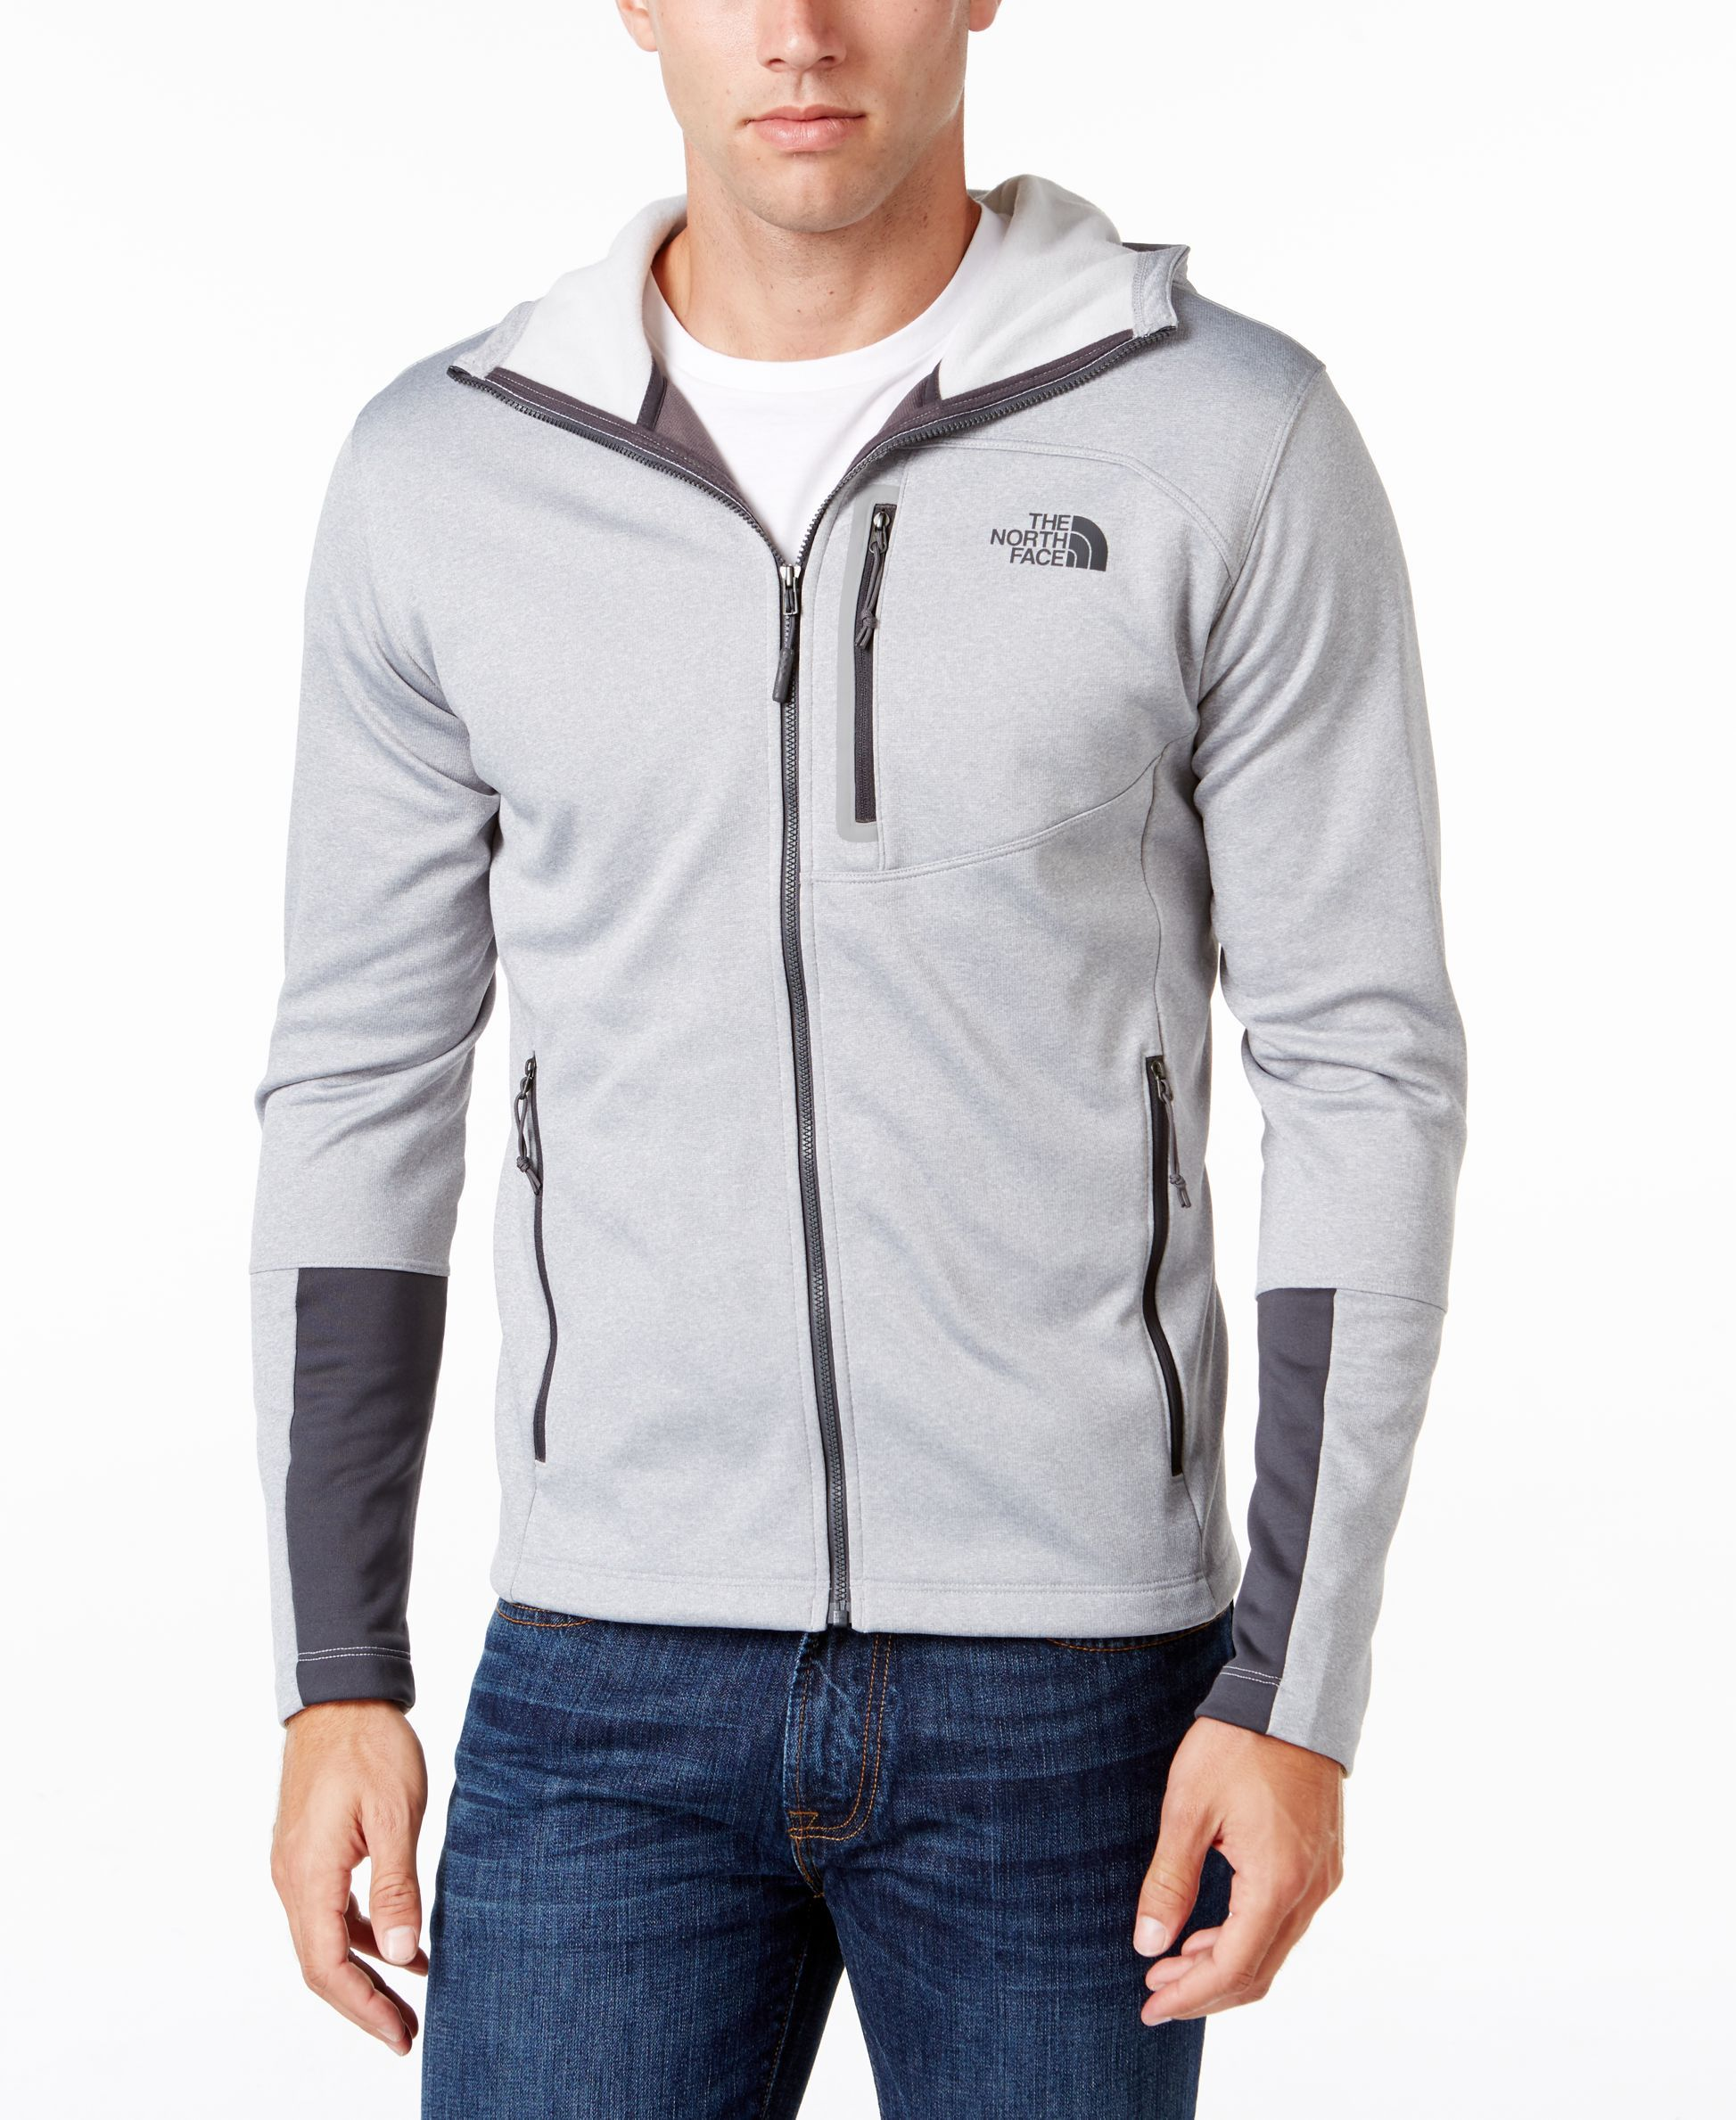 c9748c69cb3d The North Face Men s Canyonlands Full-Zip Hoodie